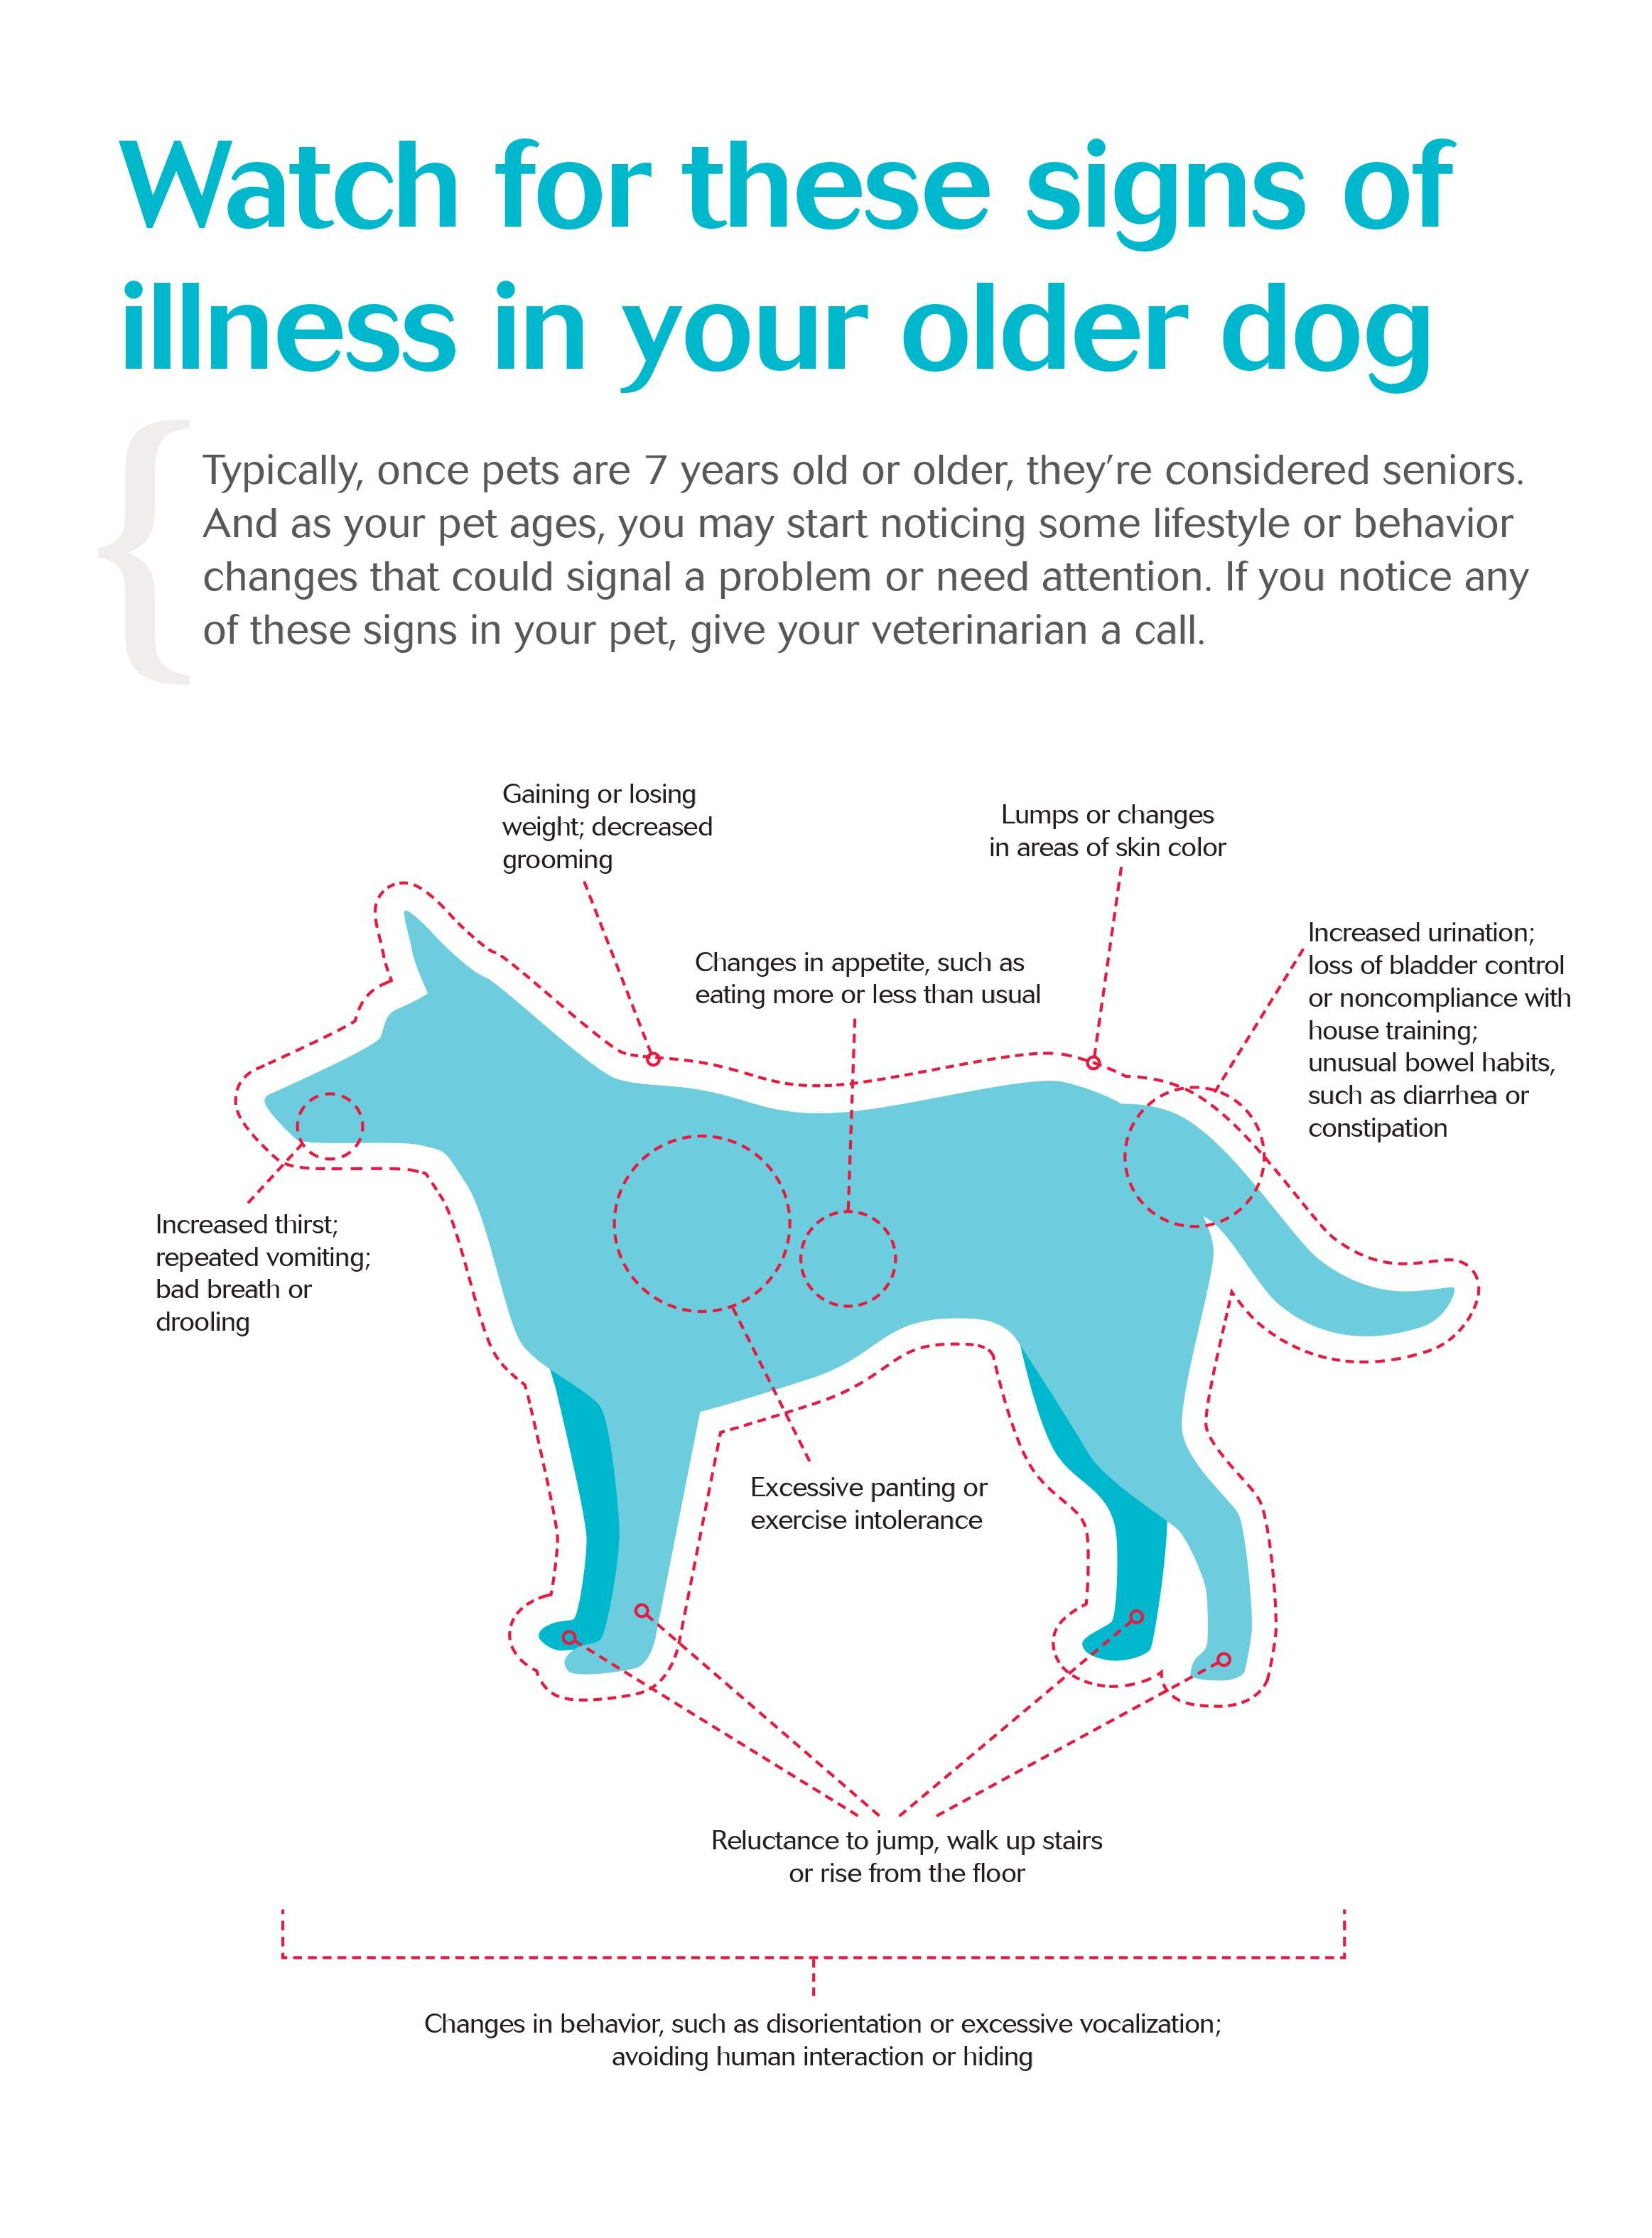 Signs Of Illness In Your Older Dog Dvm360 Senior Pet Care